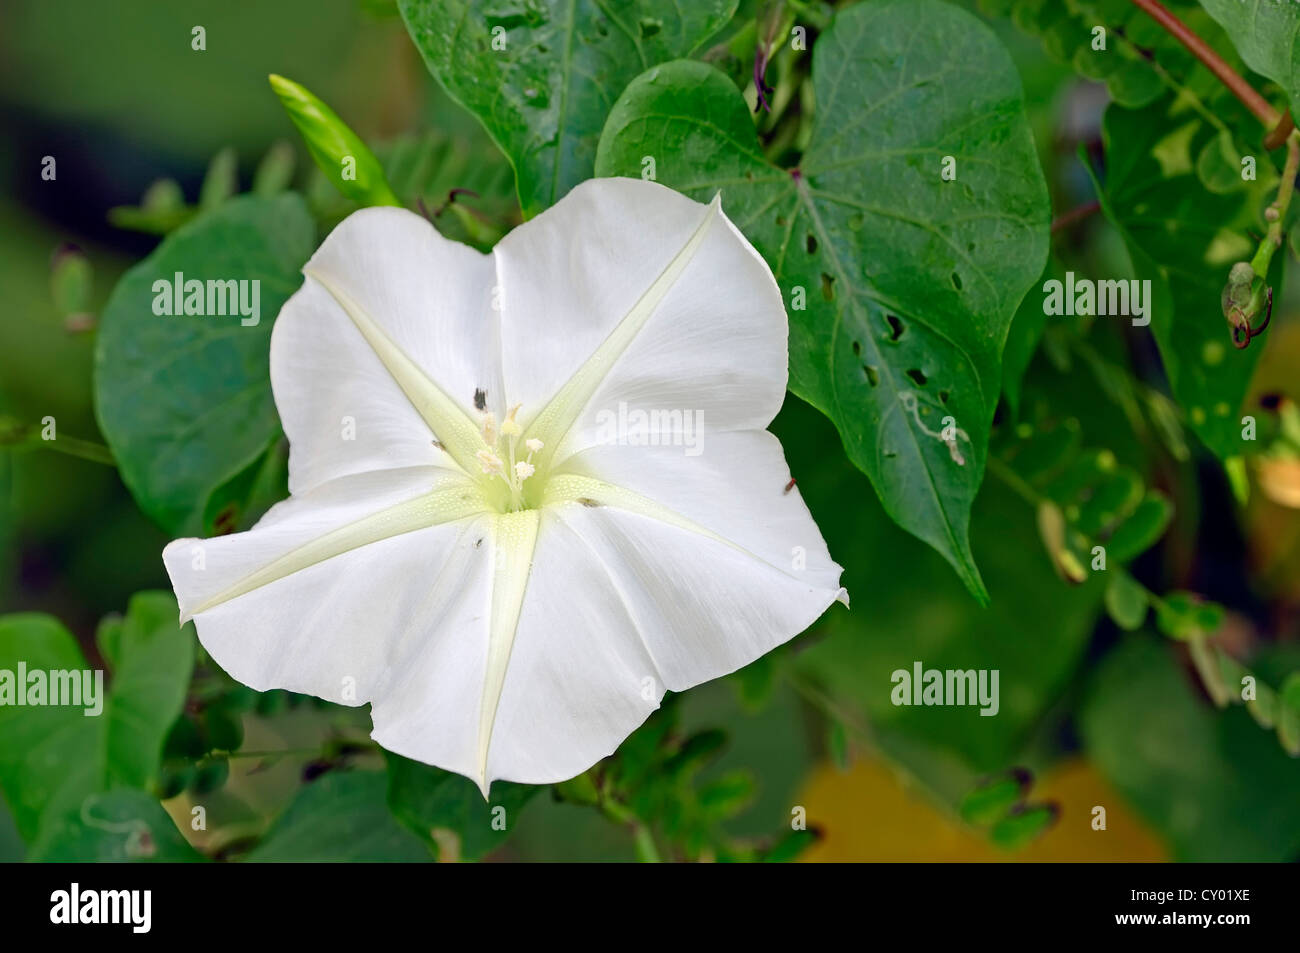 Species of morning glory stock photos species of morning glory moonflower or tropical white morning glory ipomoea alba sanibel island florida mightylinksfo Images